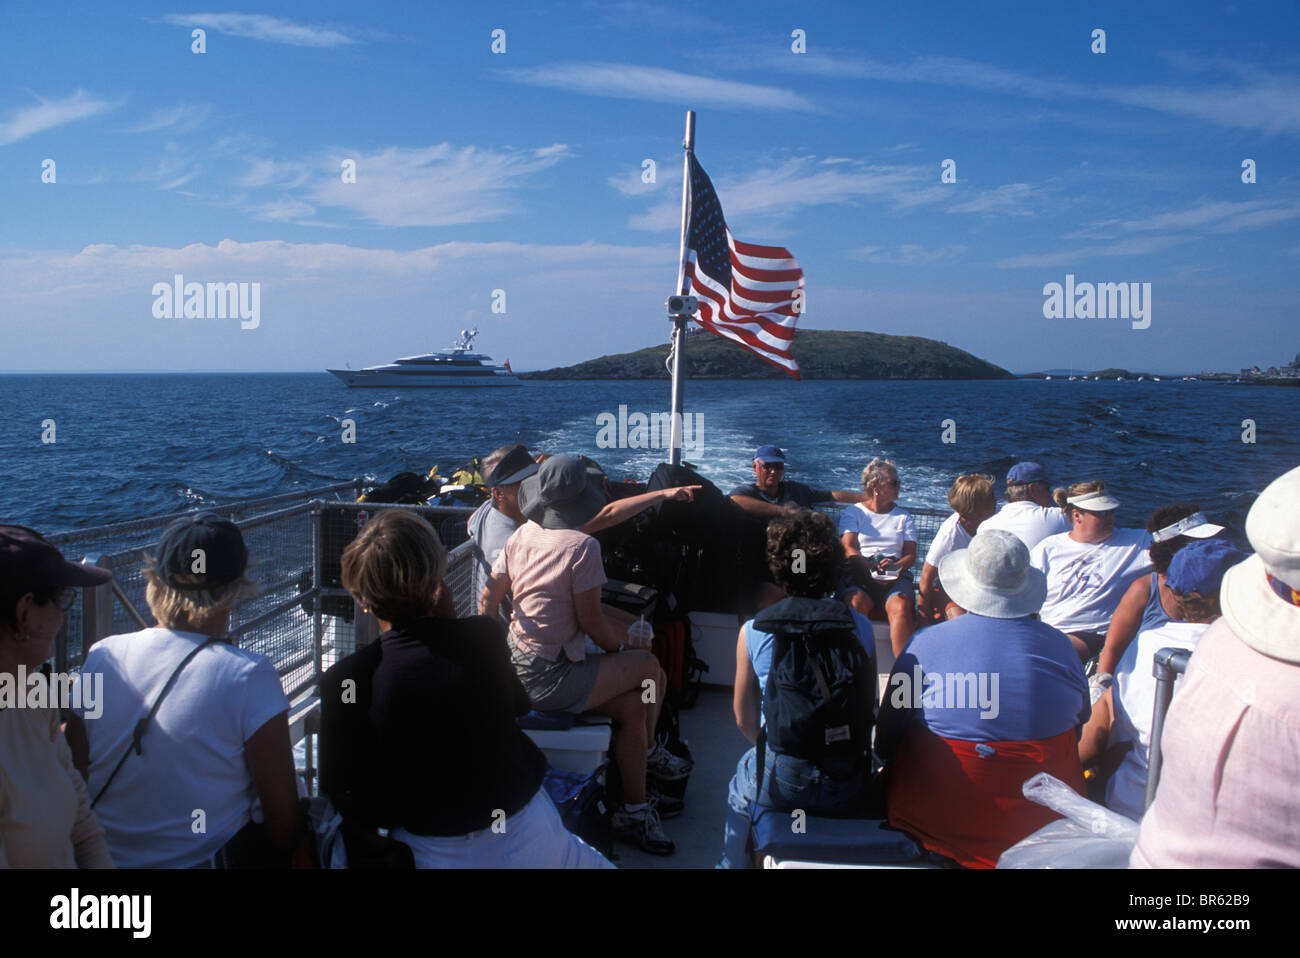 Passengers on a ferry to the picturesque island of Mohegan Central Maine. - Stock Image